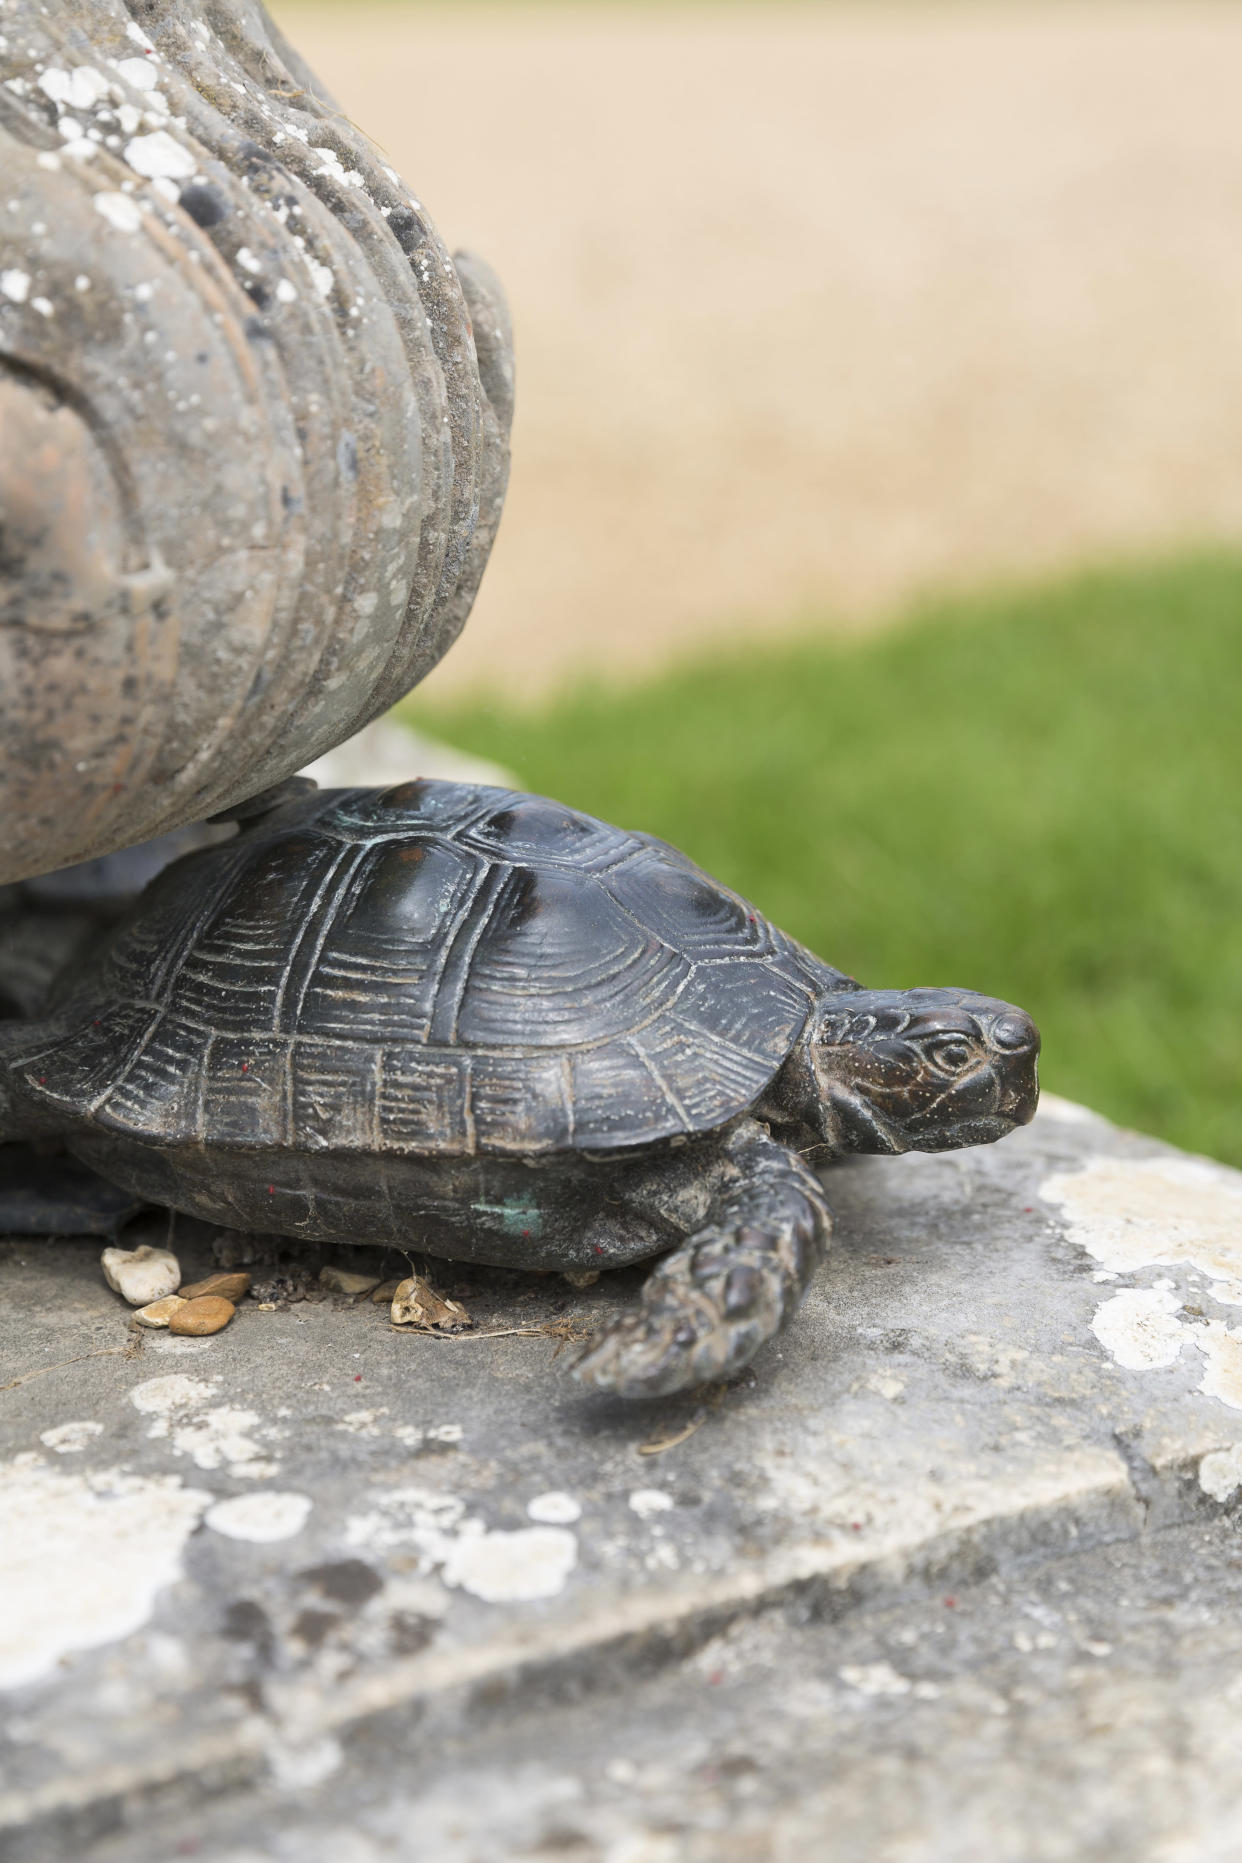 After the theft replicas of the tortoises were commissioned to replace the originals (James Dobson/National Trust/PA).